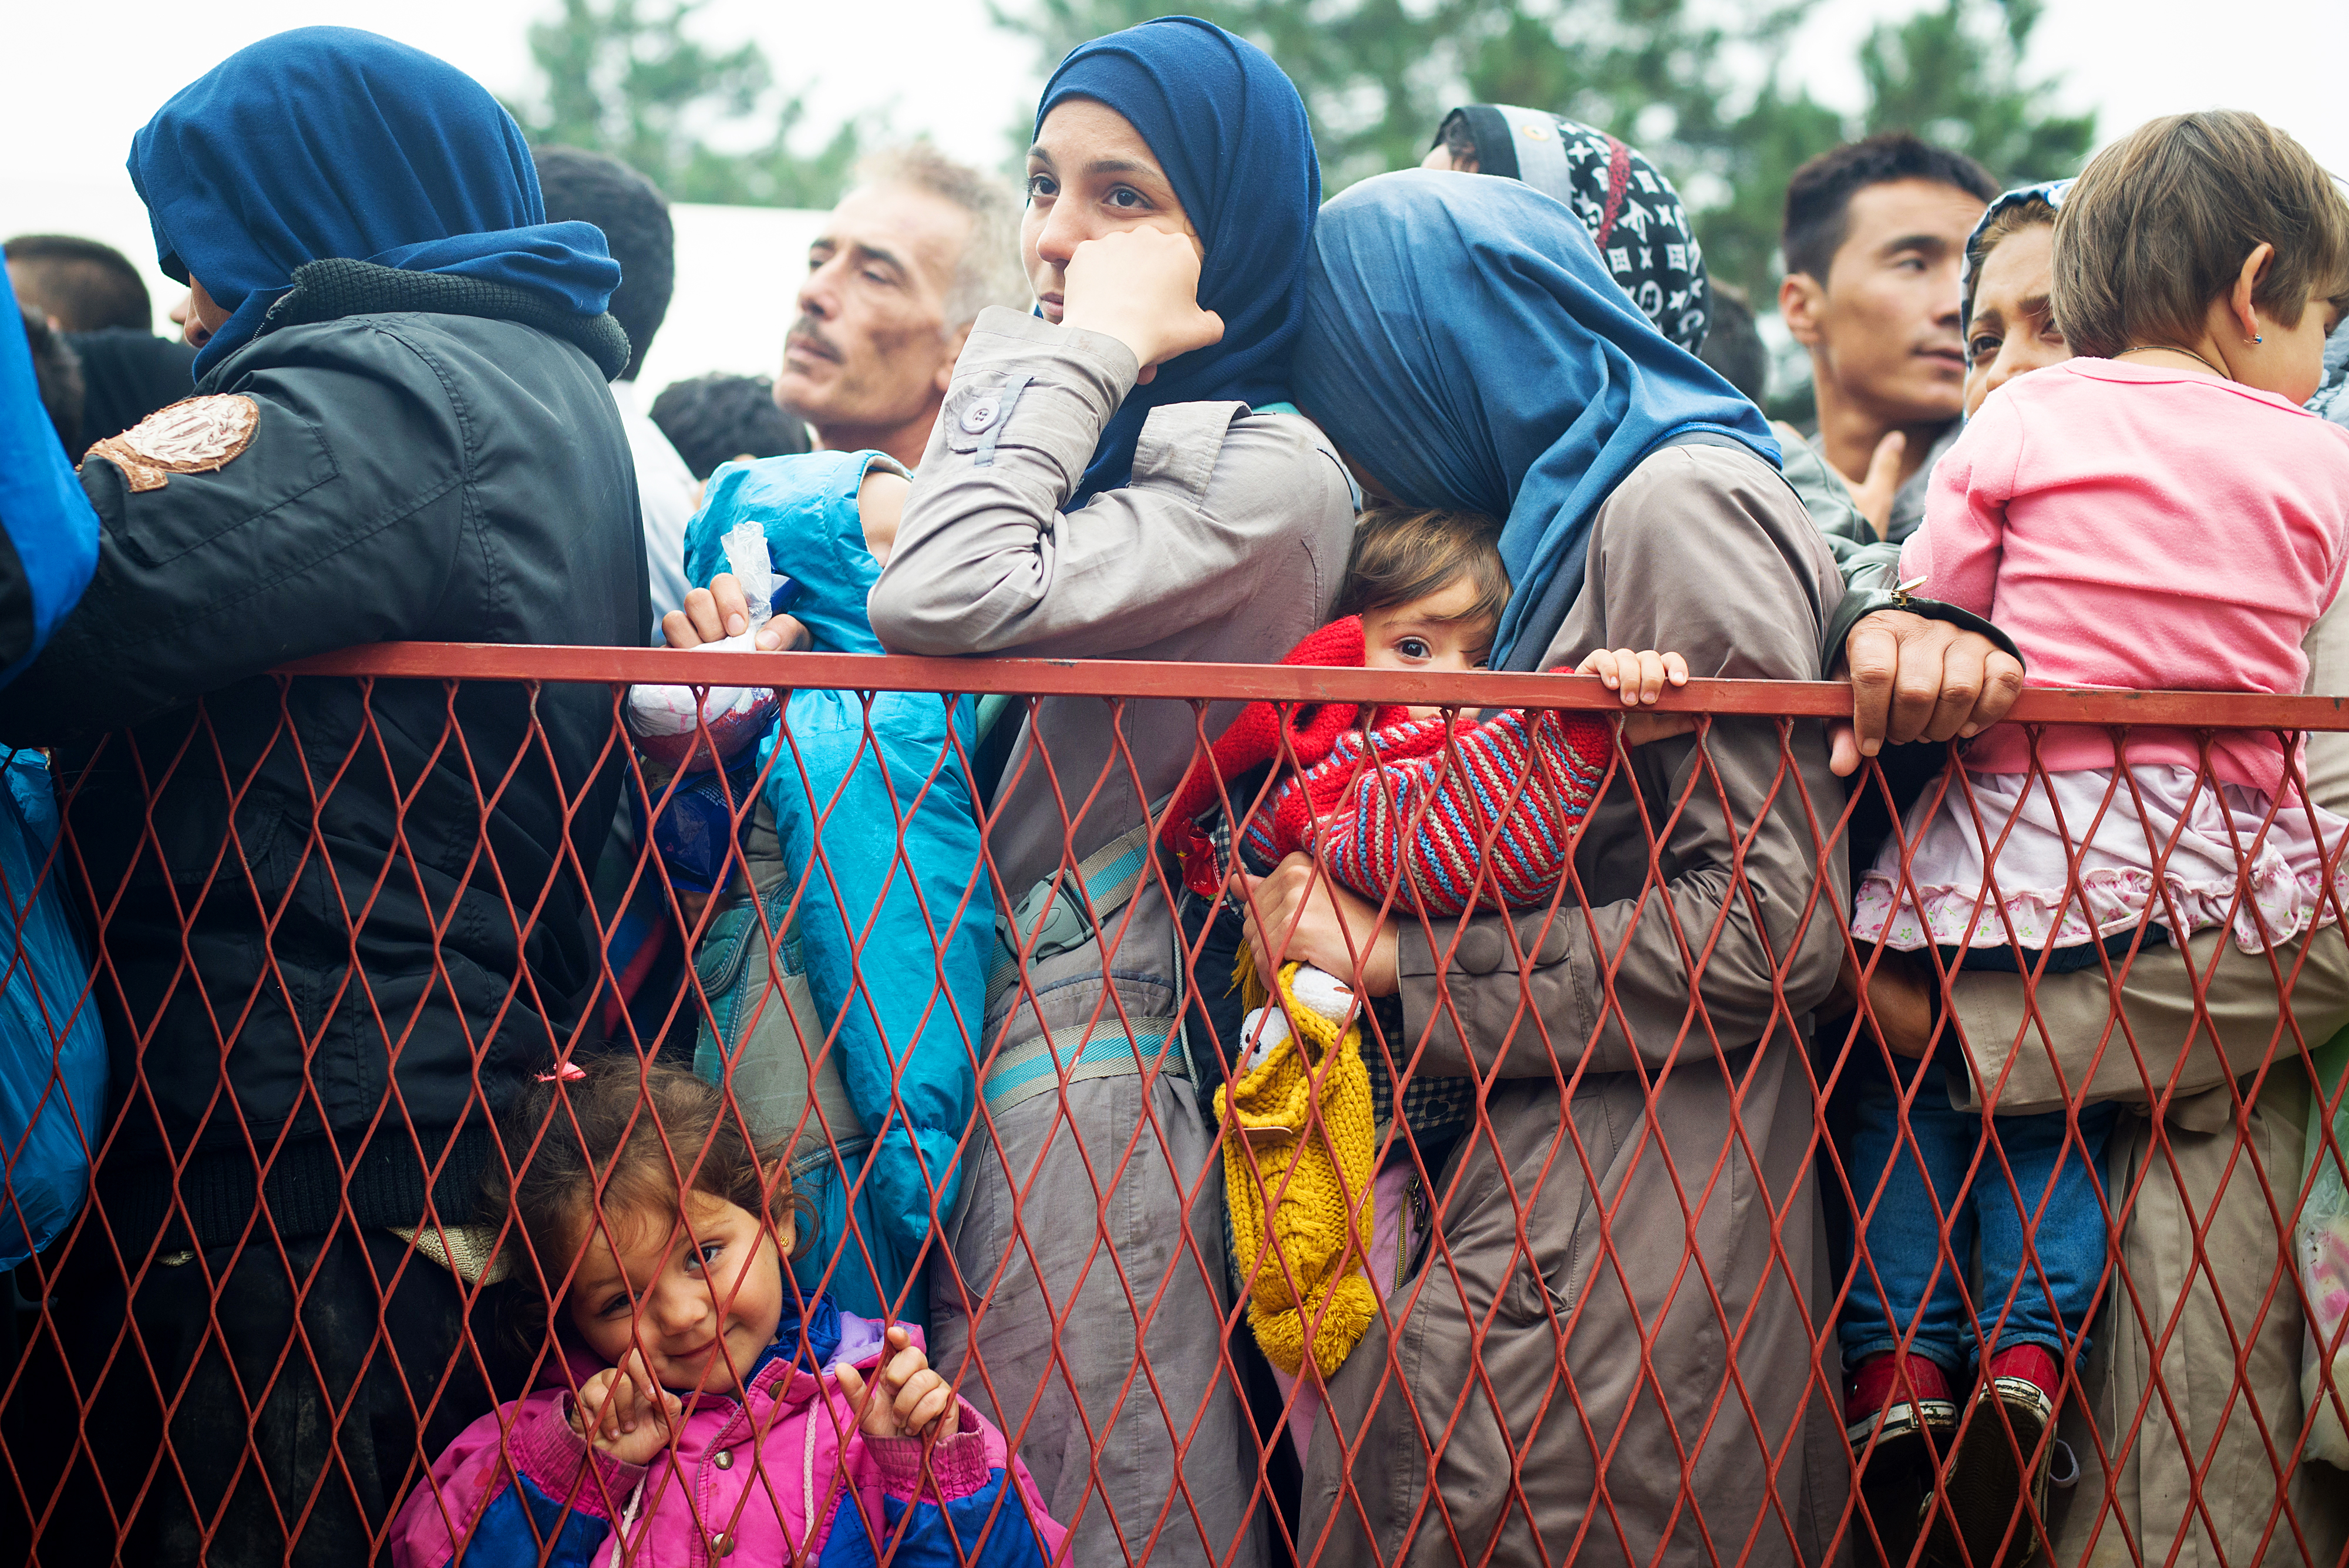 Refugees wait for transportation to the Hungary border at a park near Belgrade, Serbia.CRS has served nearly 63,000 refugees with food, emergency supplies, and medical and other assistance. Photo by Kira Horvath for CRS